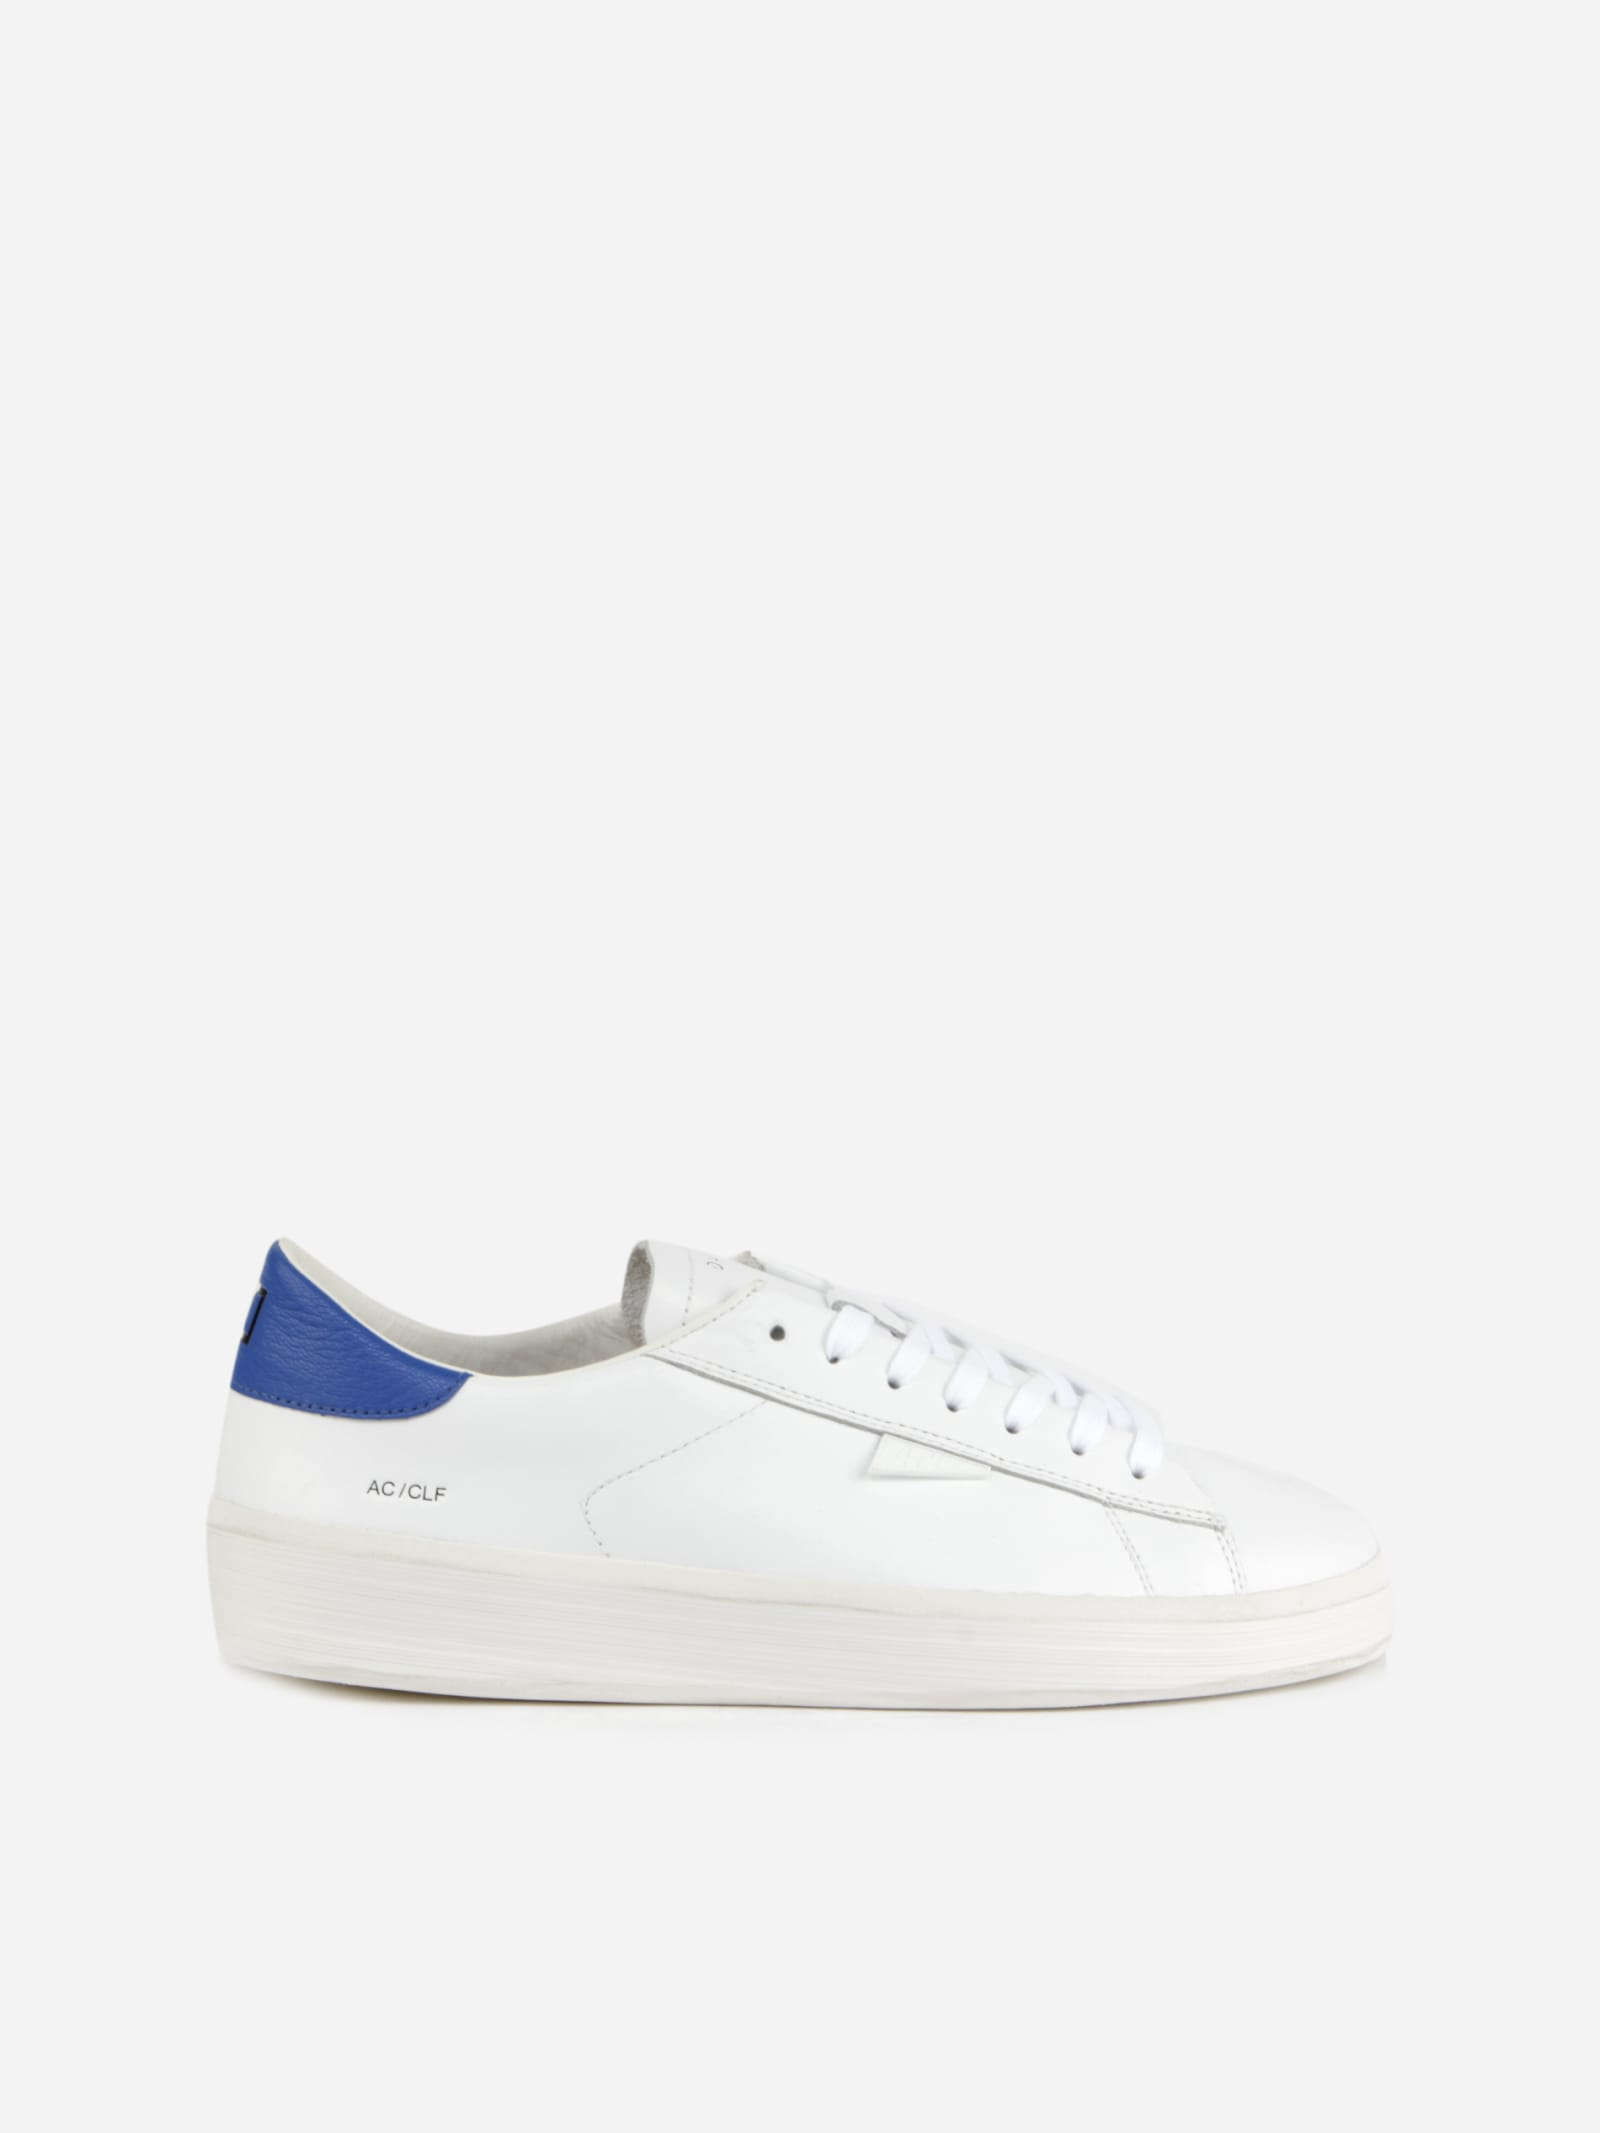 Low Sneakers In Leather With Contrasting Heel Tab